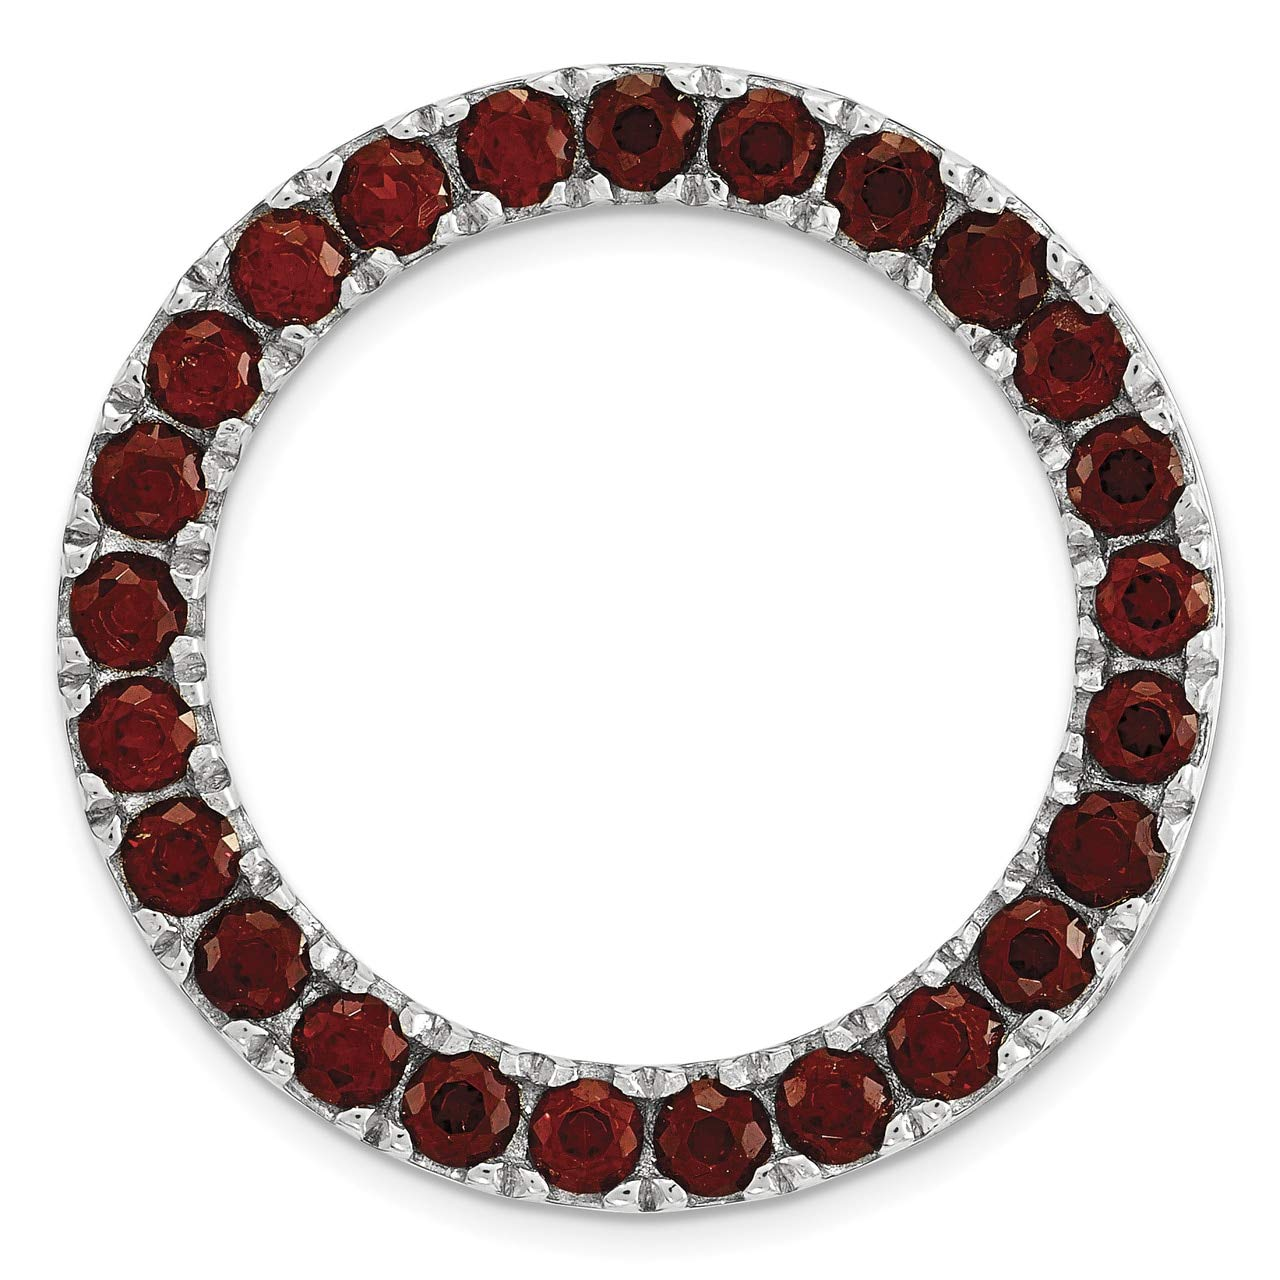 Lex /& Lu Sterling Silver Stackable Expressions Medium Polished Garnet Chain Slide